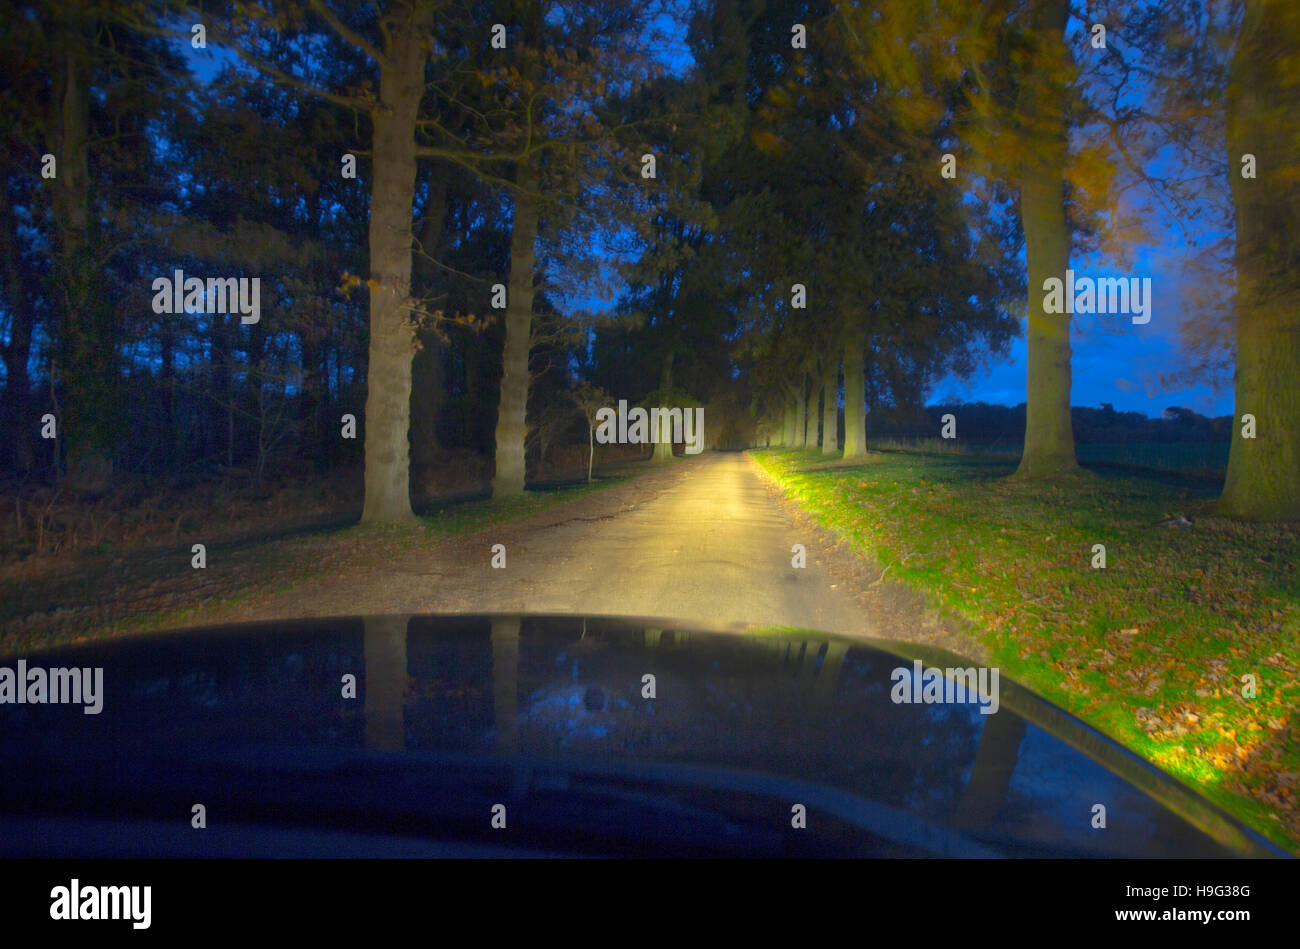 Oak trees lit by car lights abstract - Stock Image